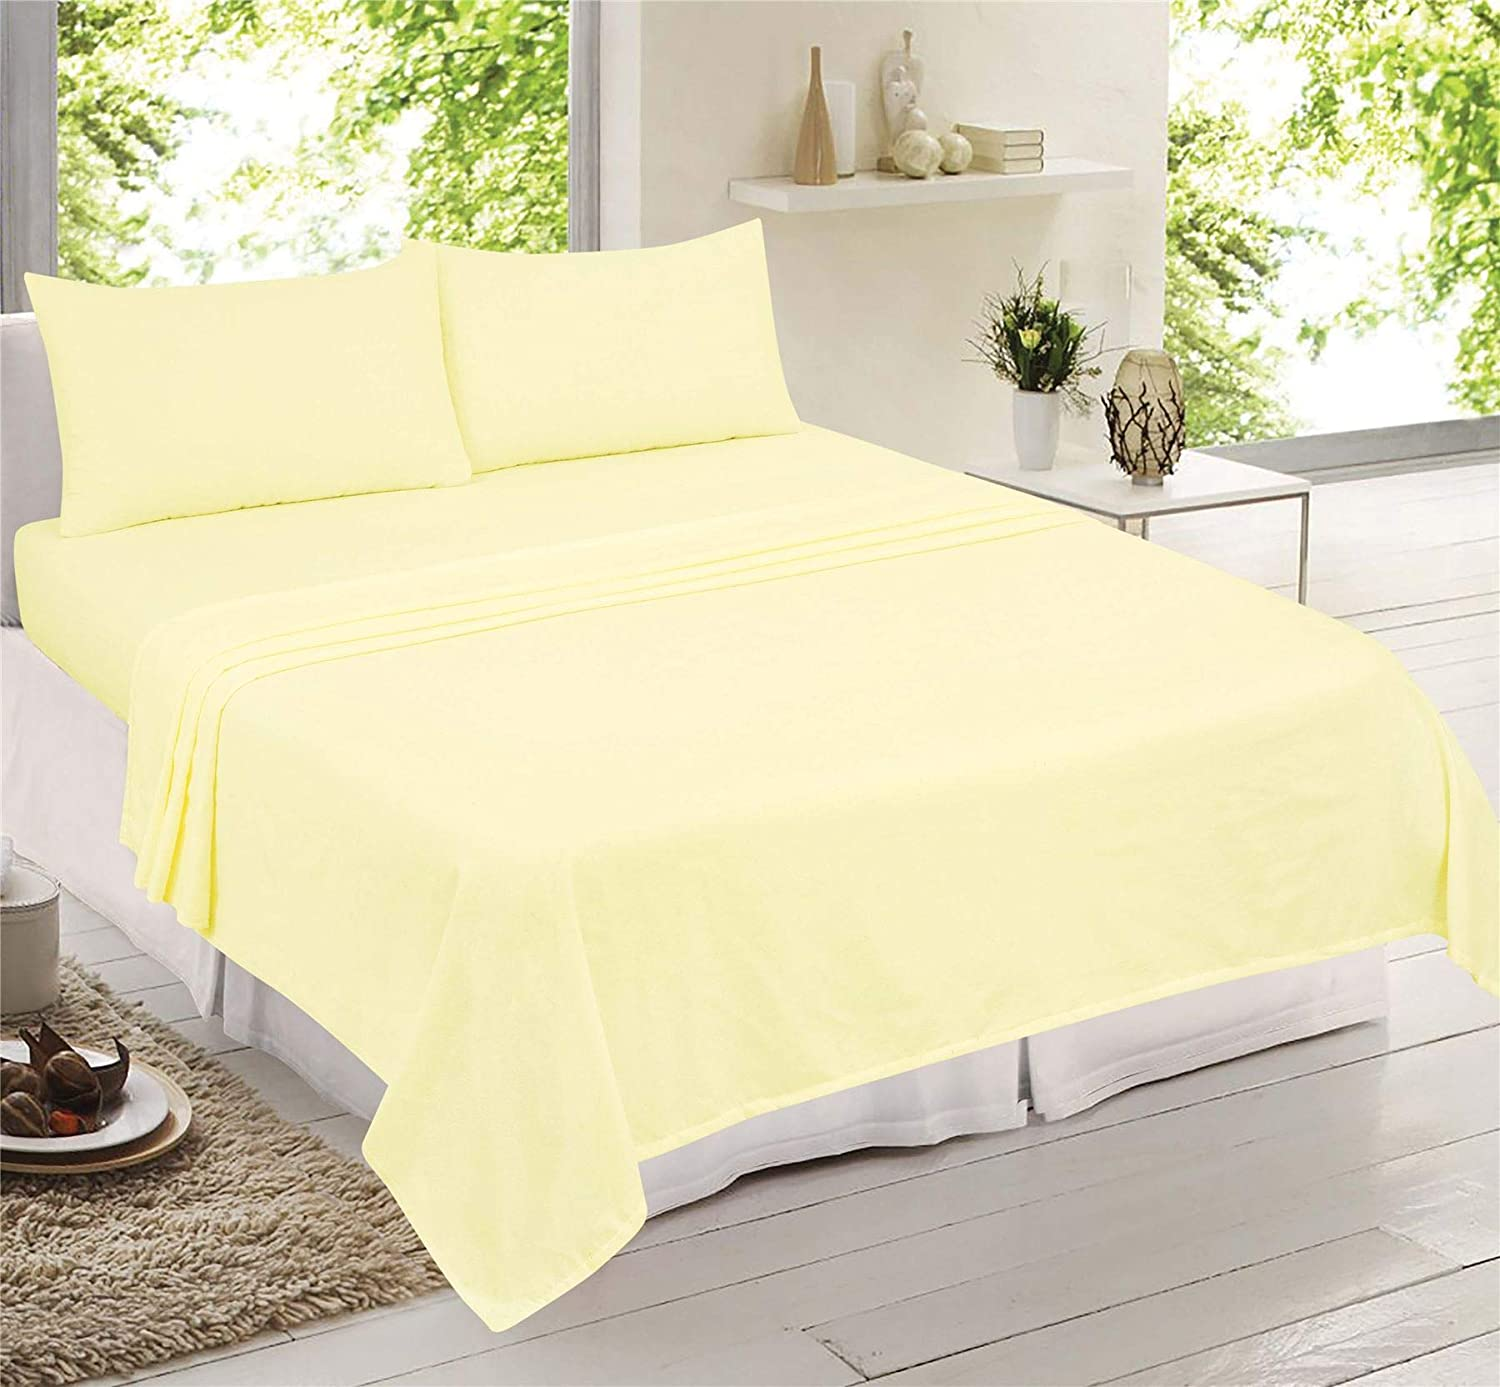 Adore Home White Brushed Cotton Warm Flannelette Bedding Sheet Set Fitted Sheet, Flat Sheet, 2 x Pillowcases, Double